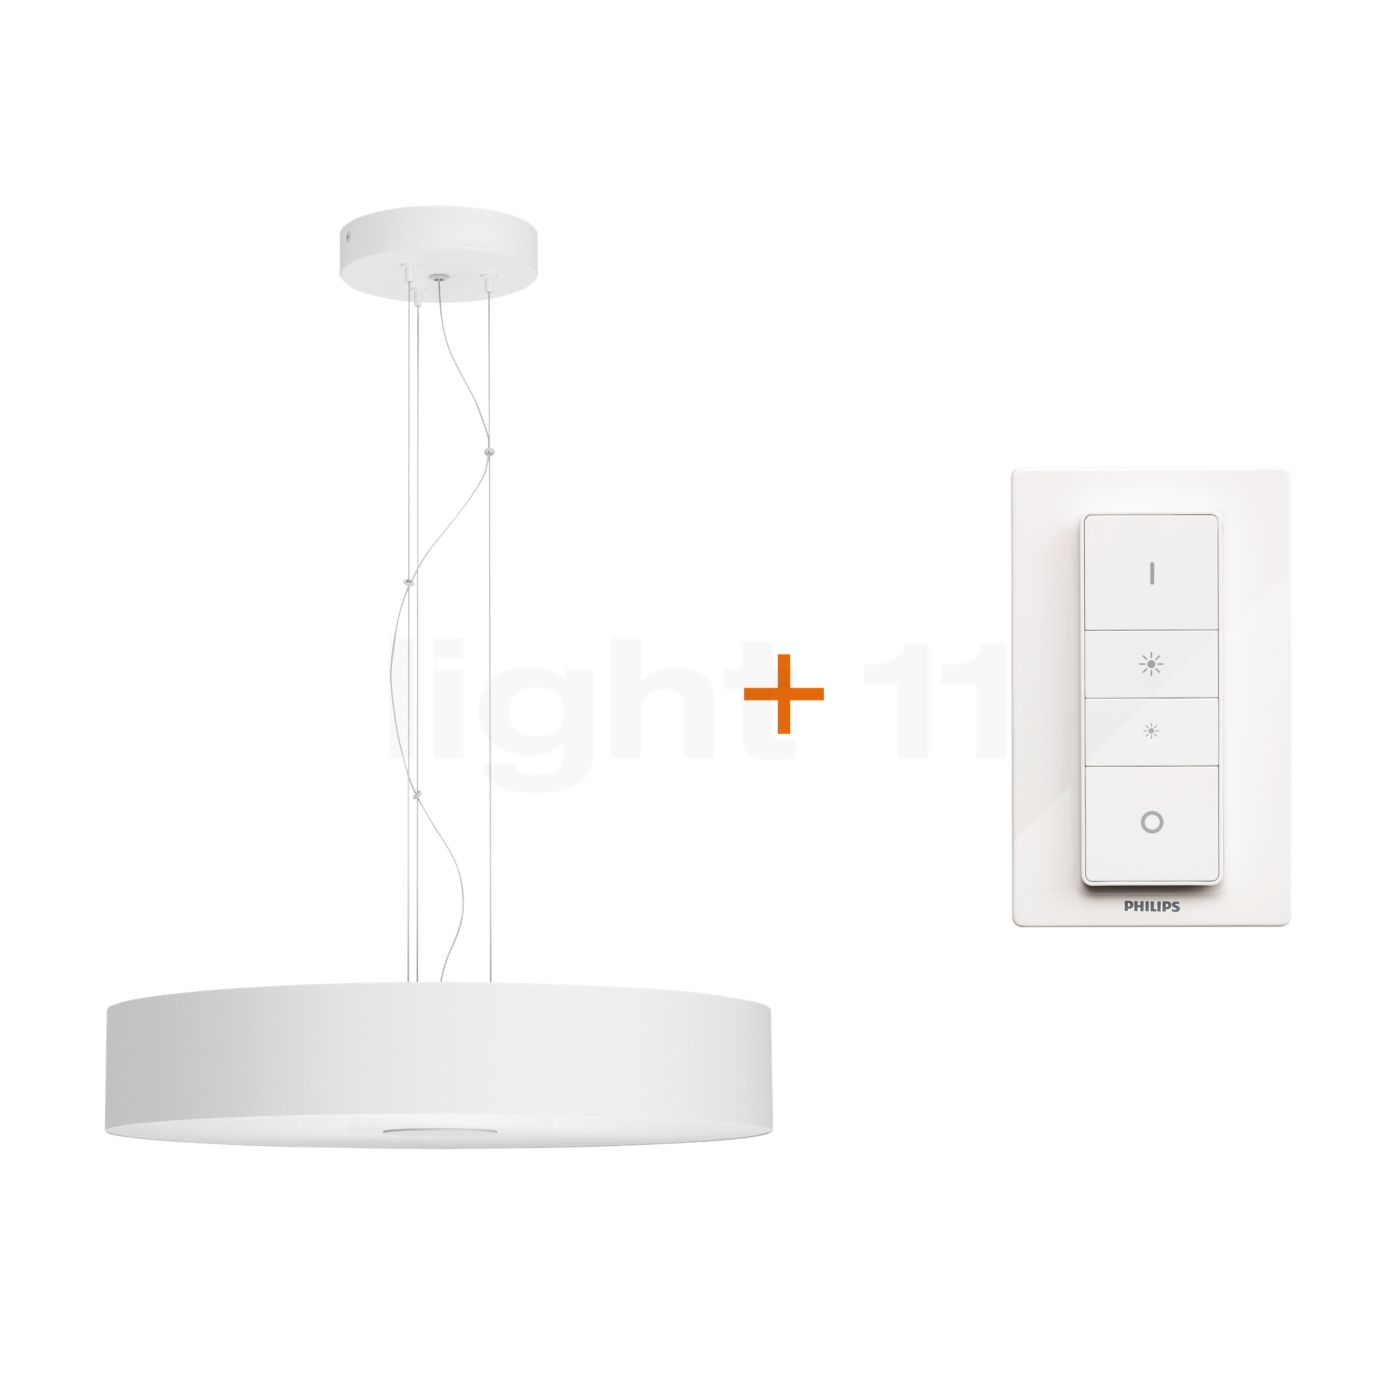 Ambiance Suspension Fair Hue White Philips 5uFJTcK1l3